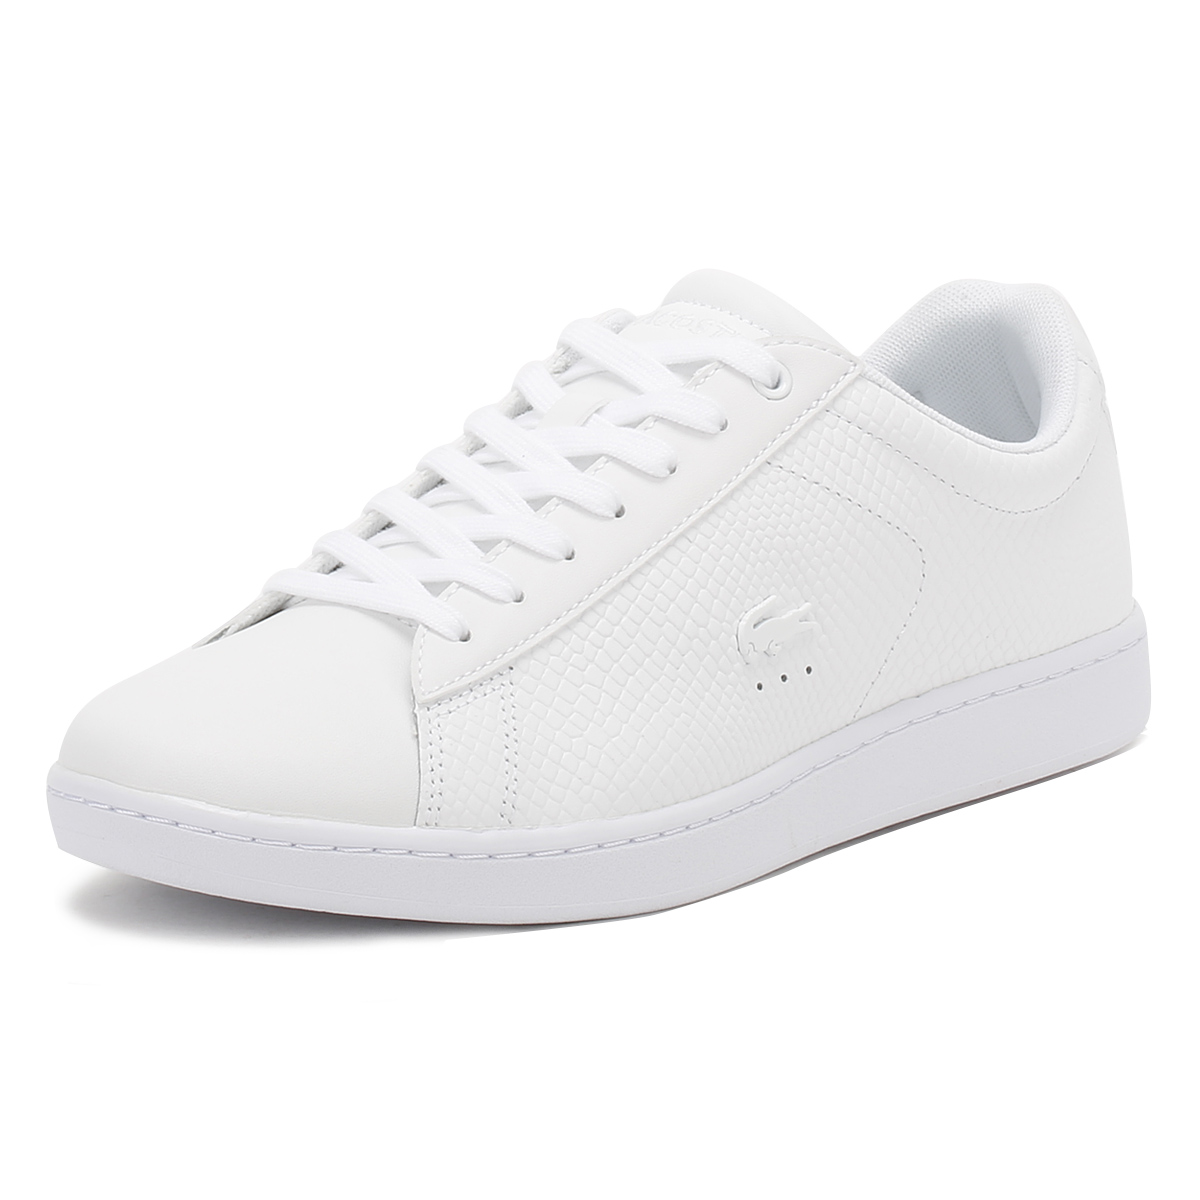 0ac7a156031ab4 Details about Lacoste Womens Trainers White Carnaby EVO 317 3 Sport Casual  Shoes